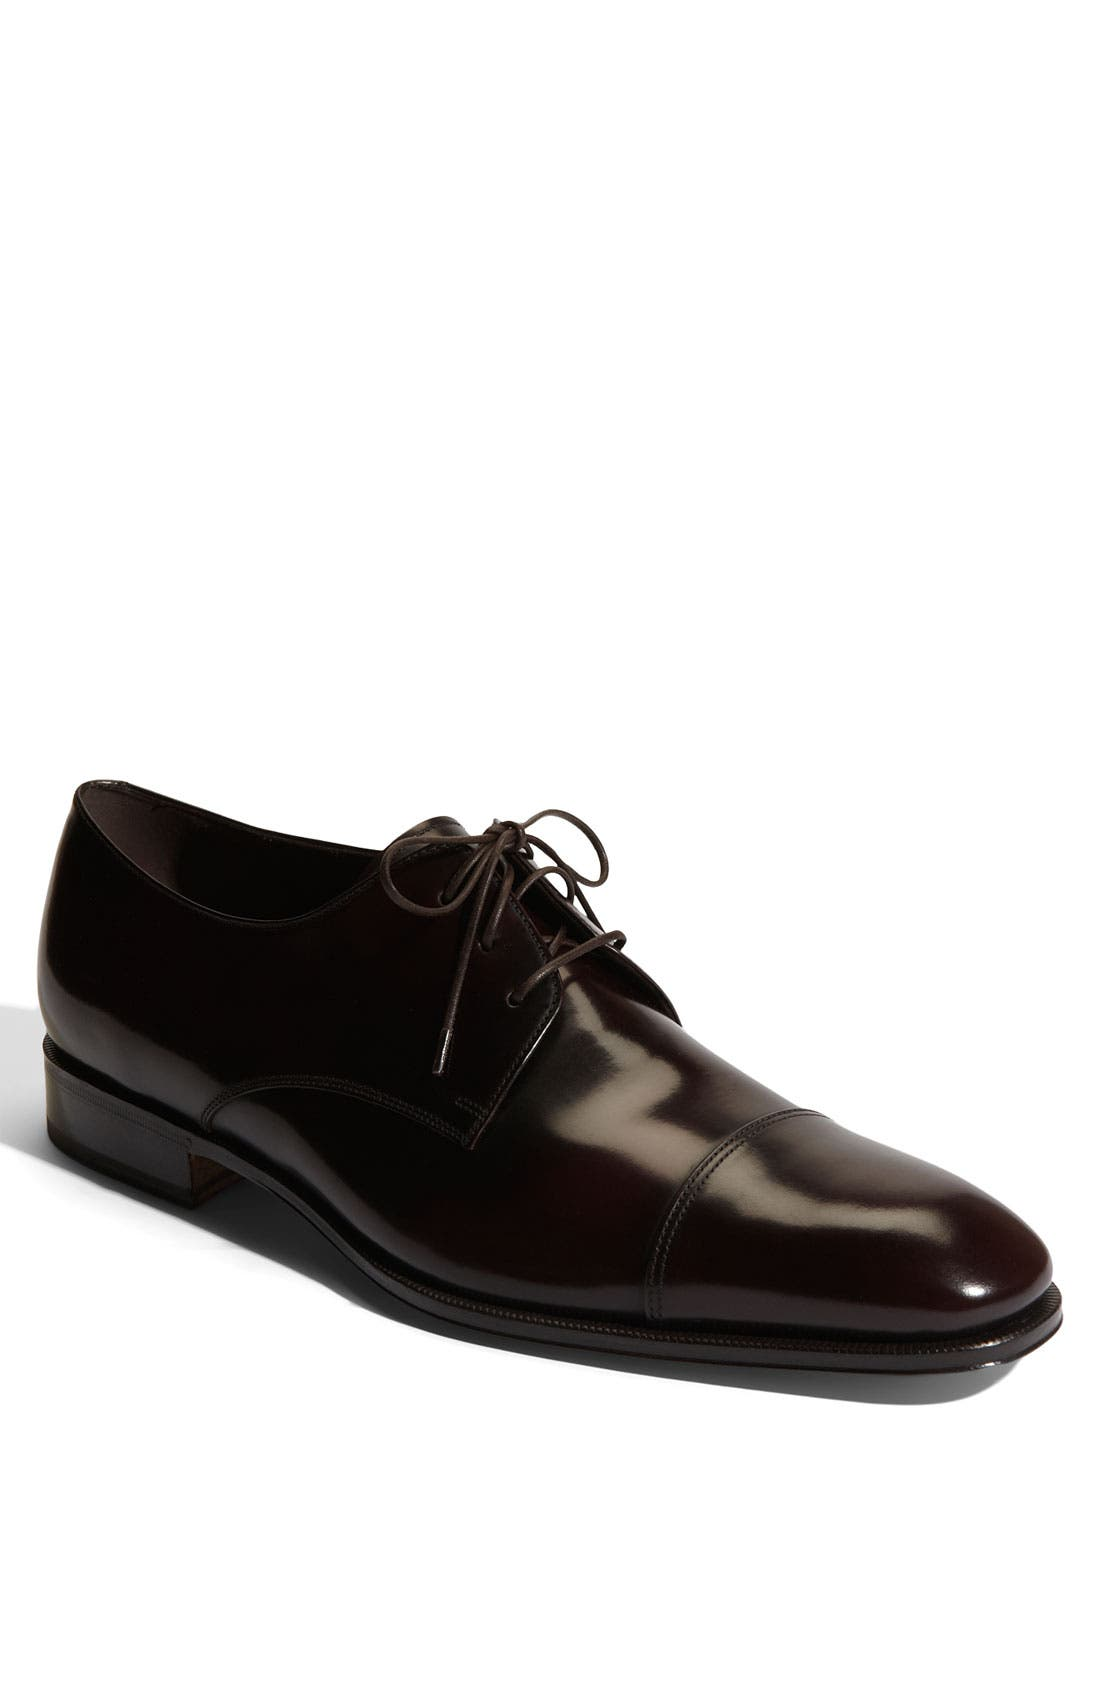 Main Image - Salvatore Ferragamo 'Faraone' Cap Toe Oxford (Men)